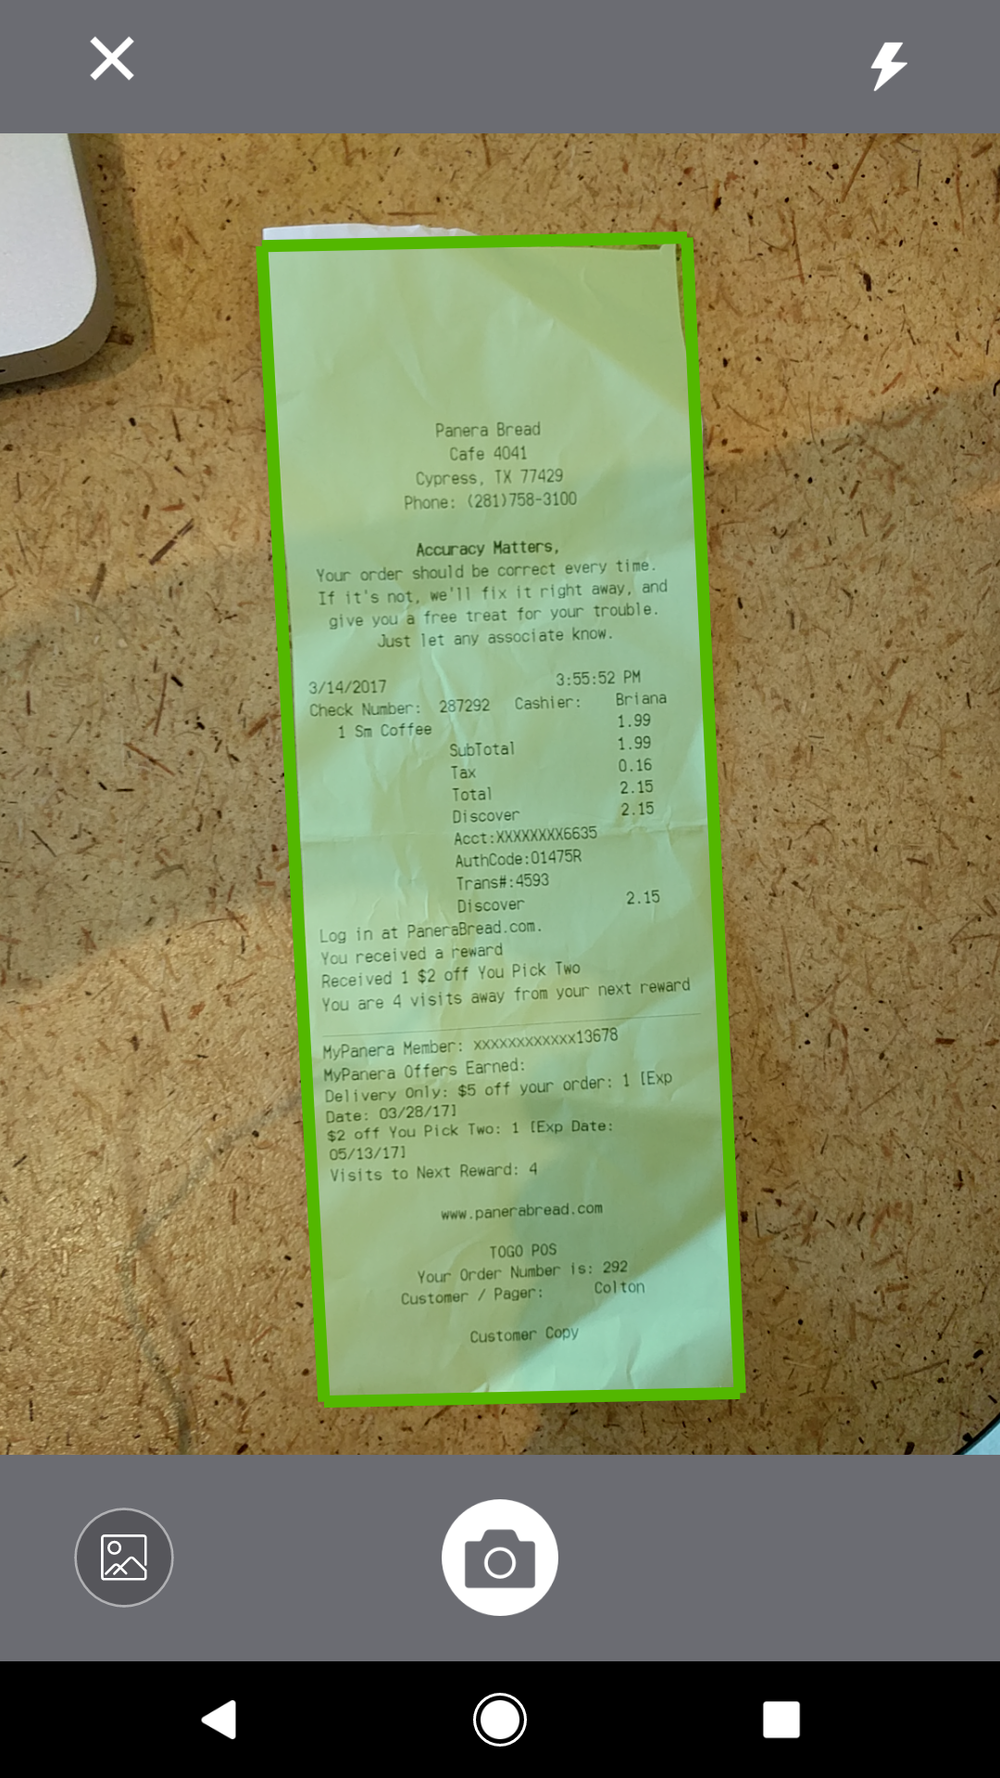 Simply take a picture of your receipt from the QuickBooks app!